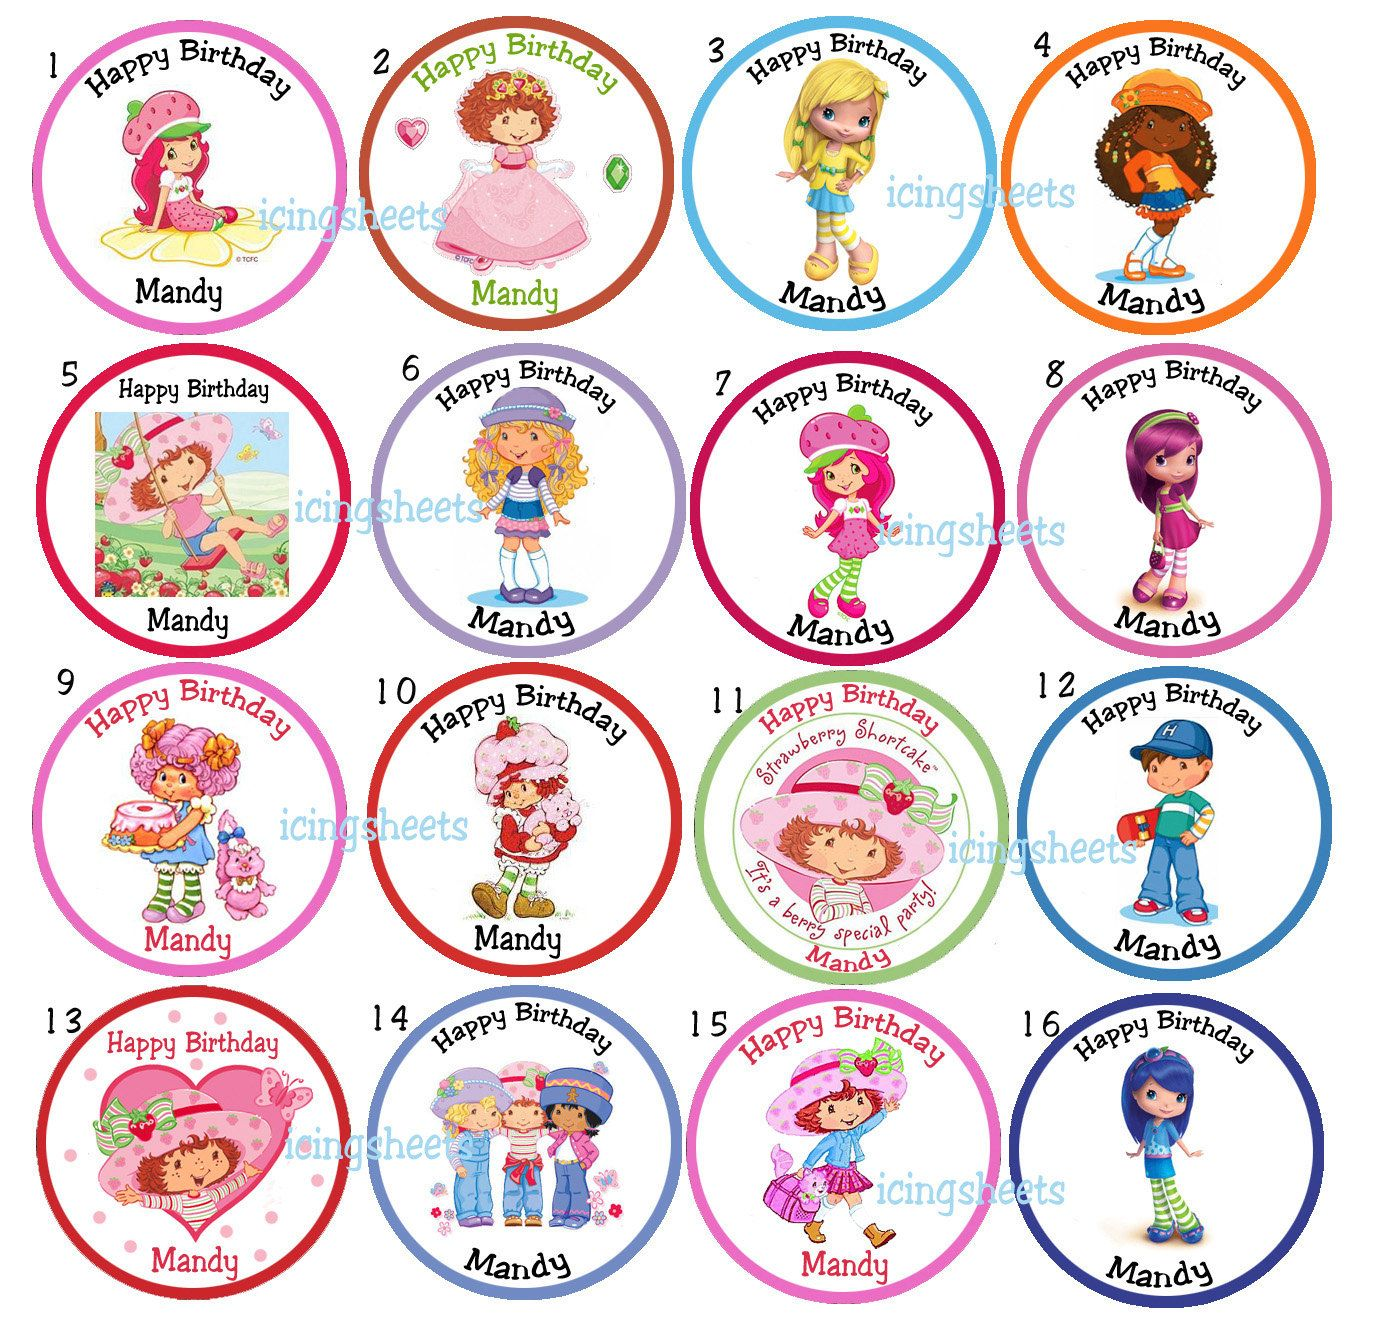 List Of Strawberry Shortcake Characters Like This Item